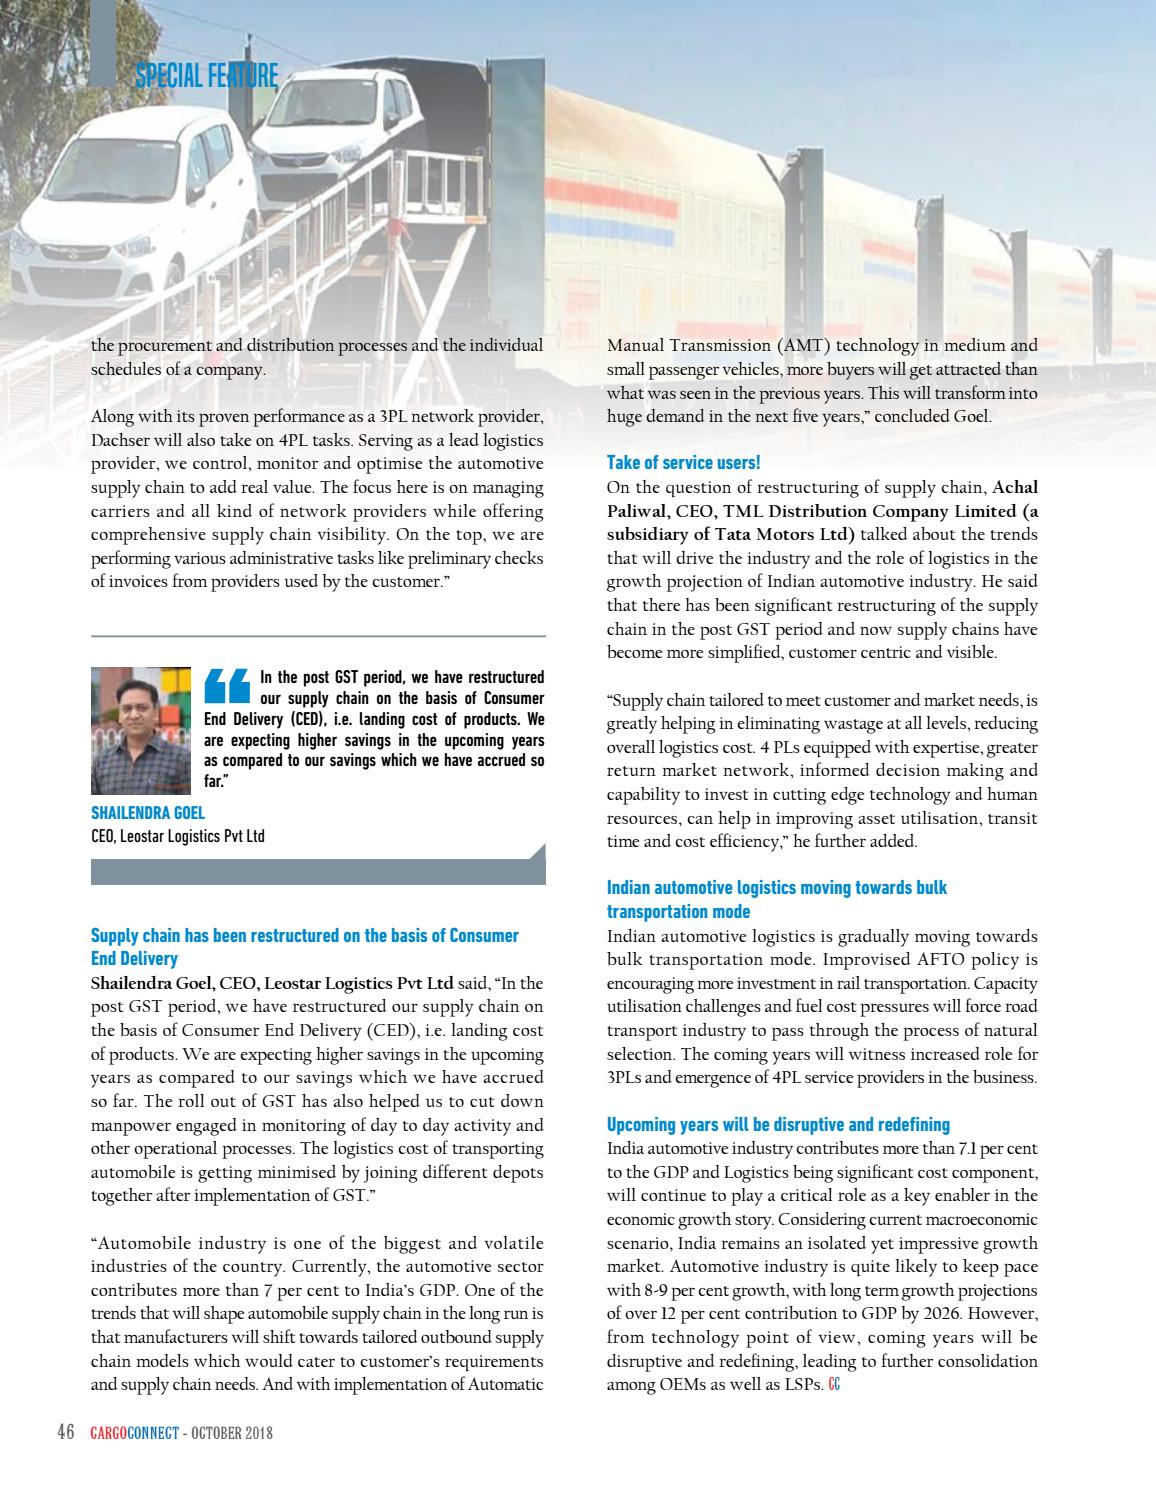 CARGOCONNECT - October issue 2018 by Surecom Media - issuu